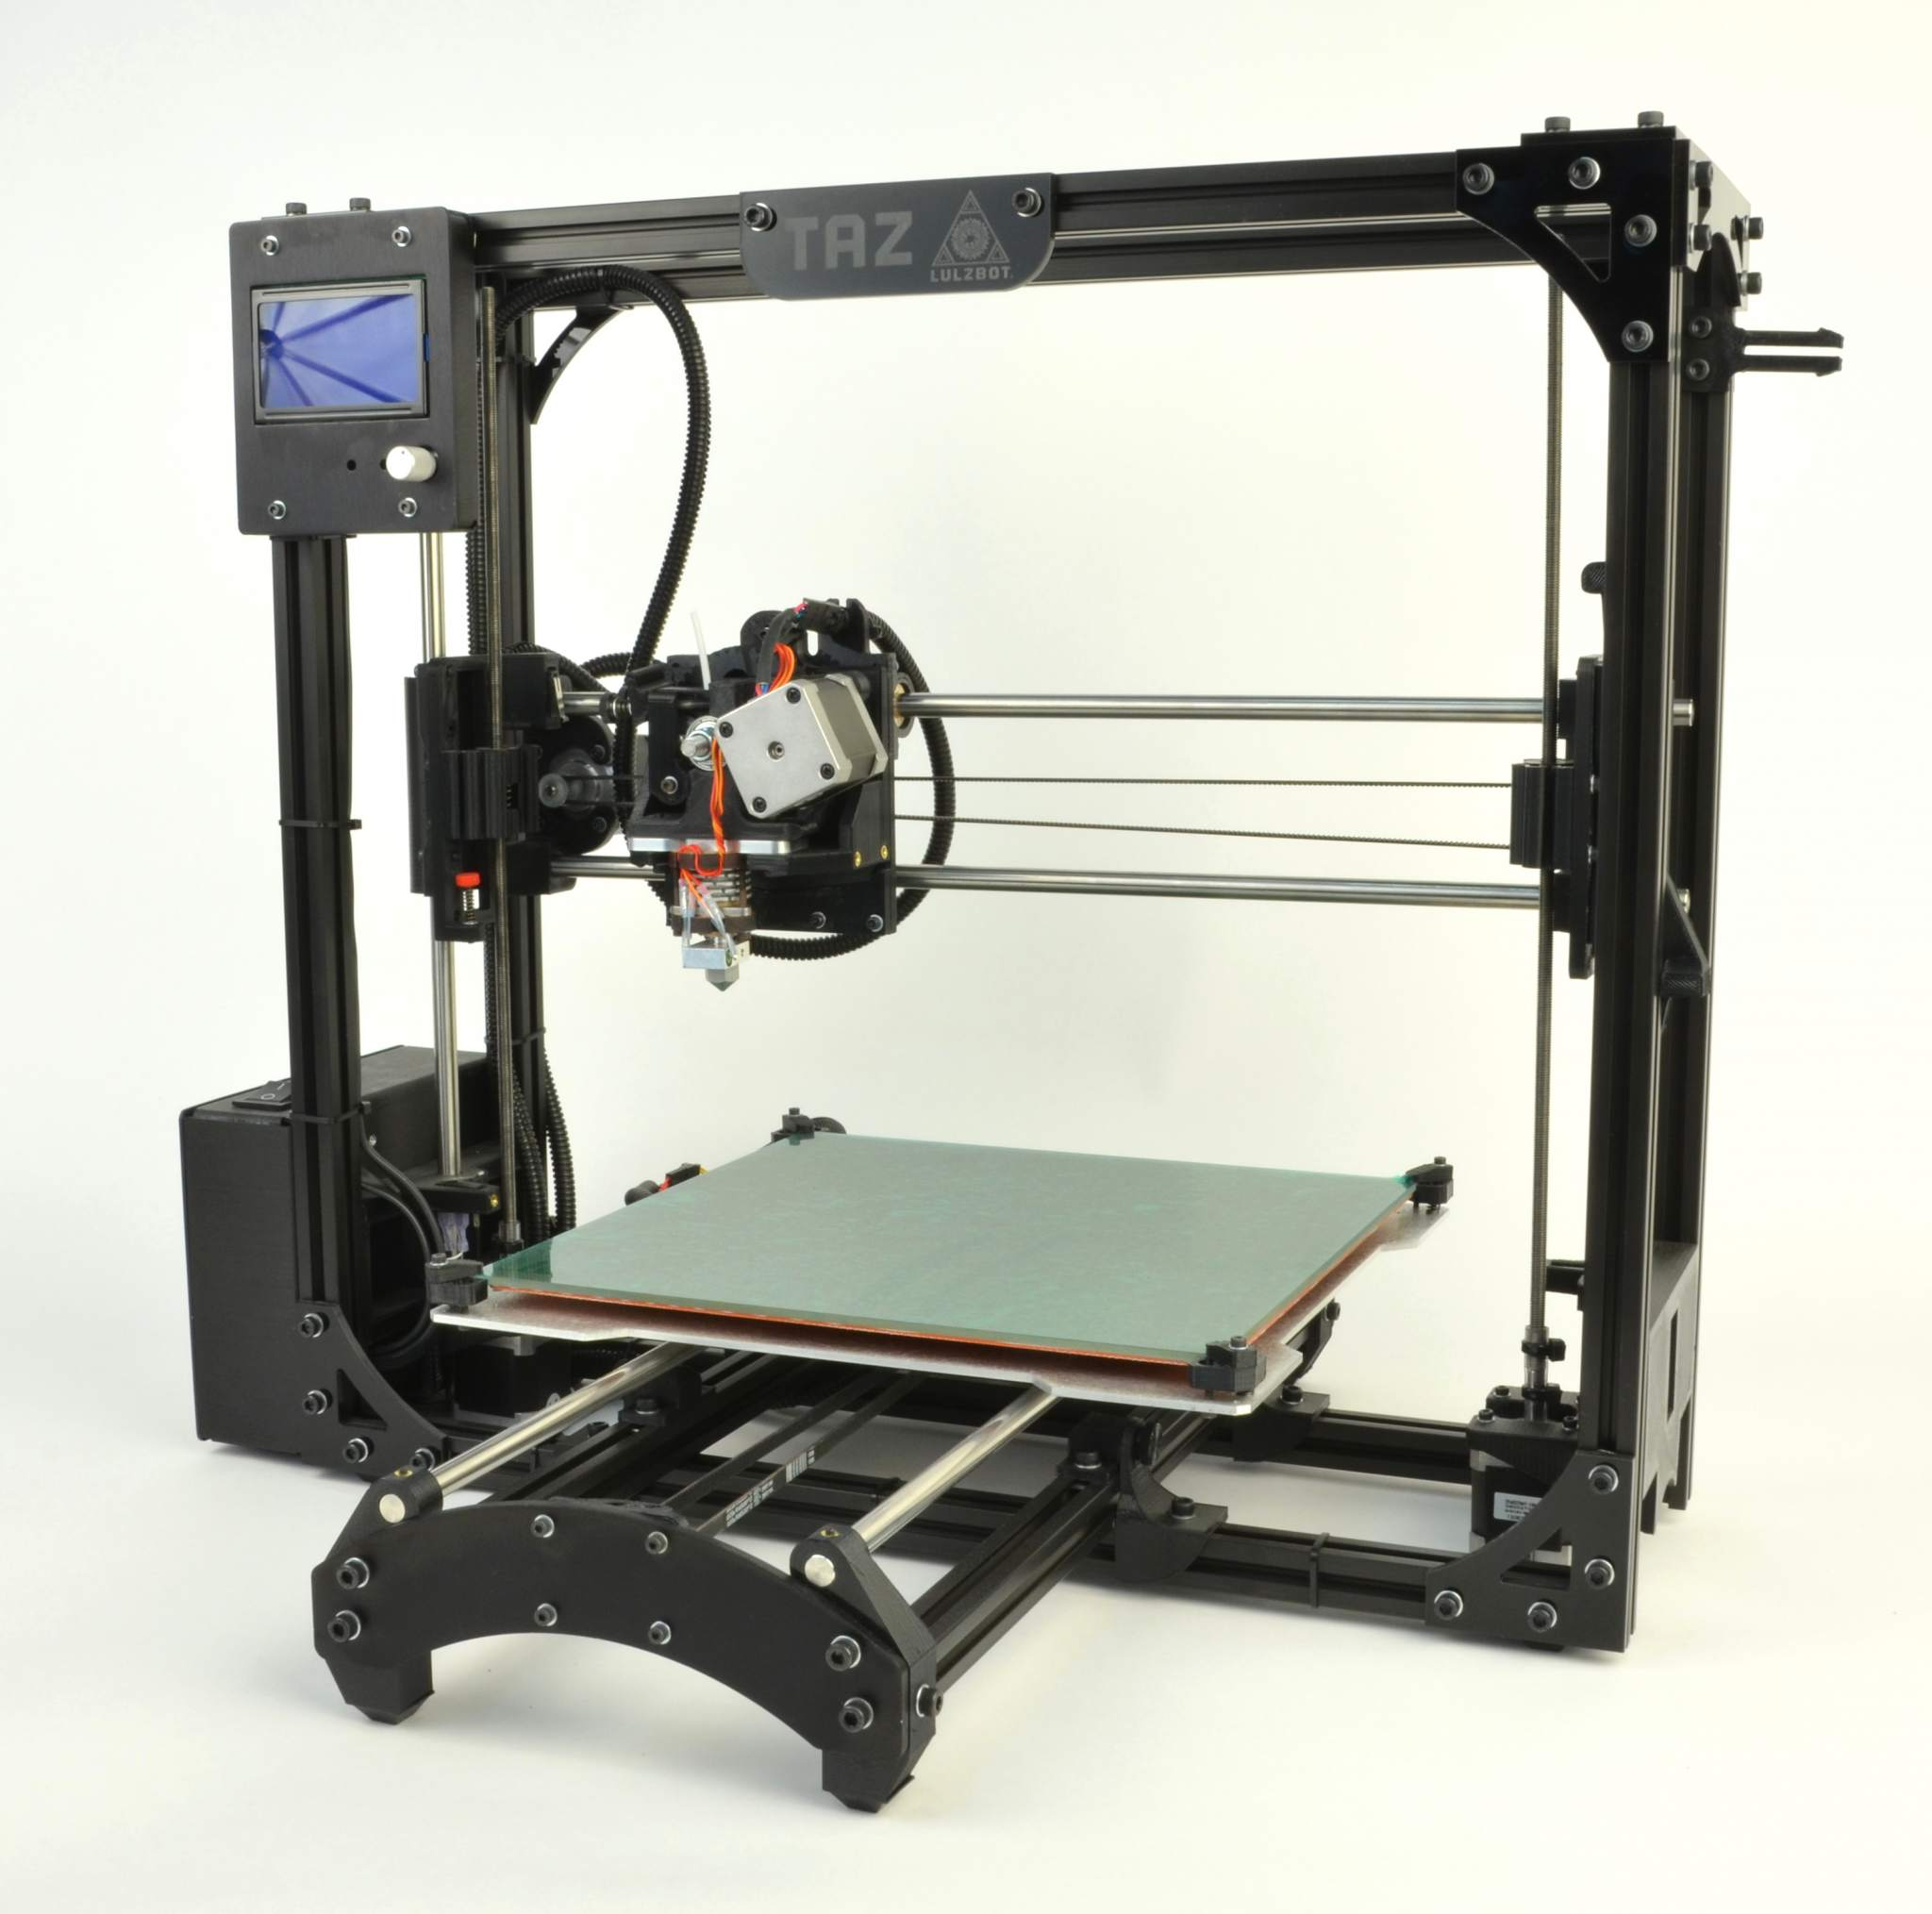 The Lulzbot Taz 3.0 3D printer. Image via Lulzbot.